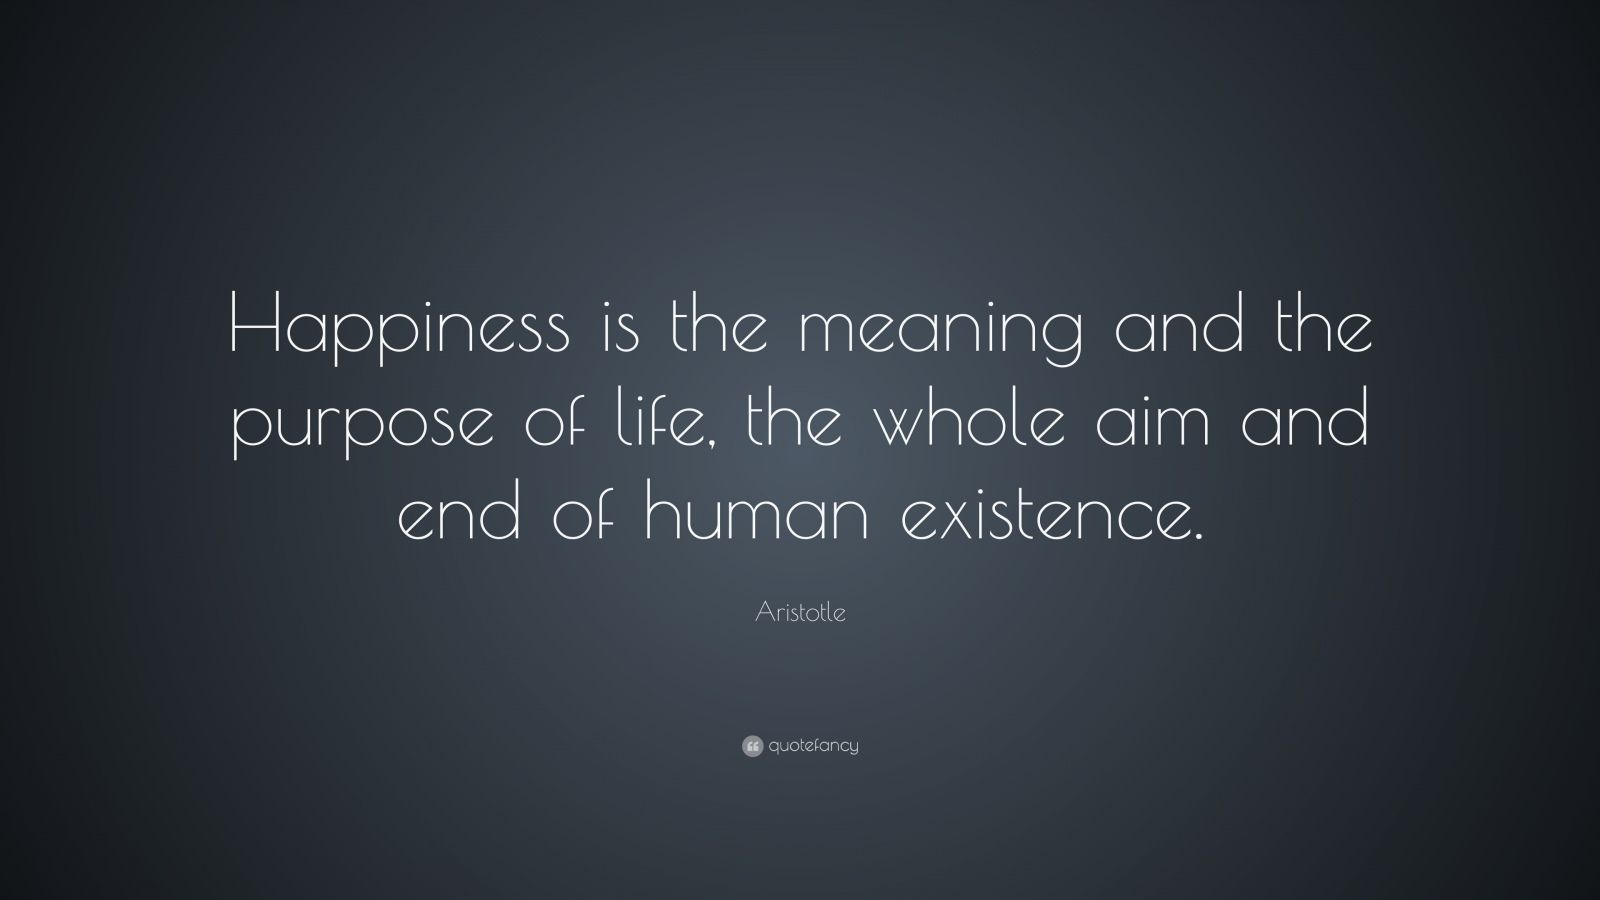 tolstoy and baier on the meaning and purpose of life essay In a sense, everything related to the search for the true meaning of life, are recurrent themes that stand out we will write a custom essay sample on themes in the three questions by leo tolstoy specifically for you.